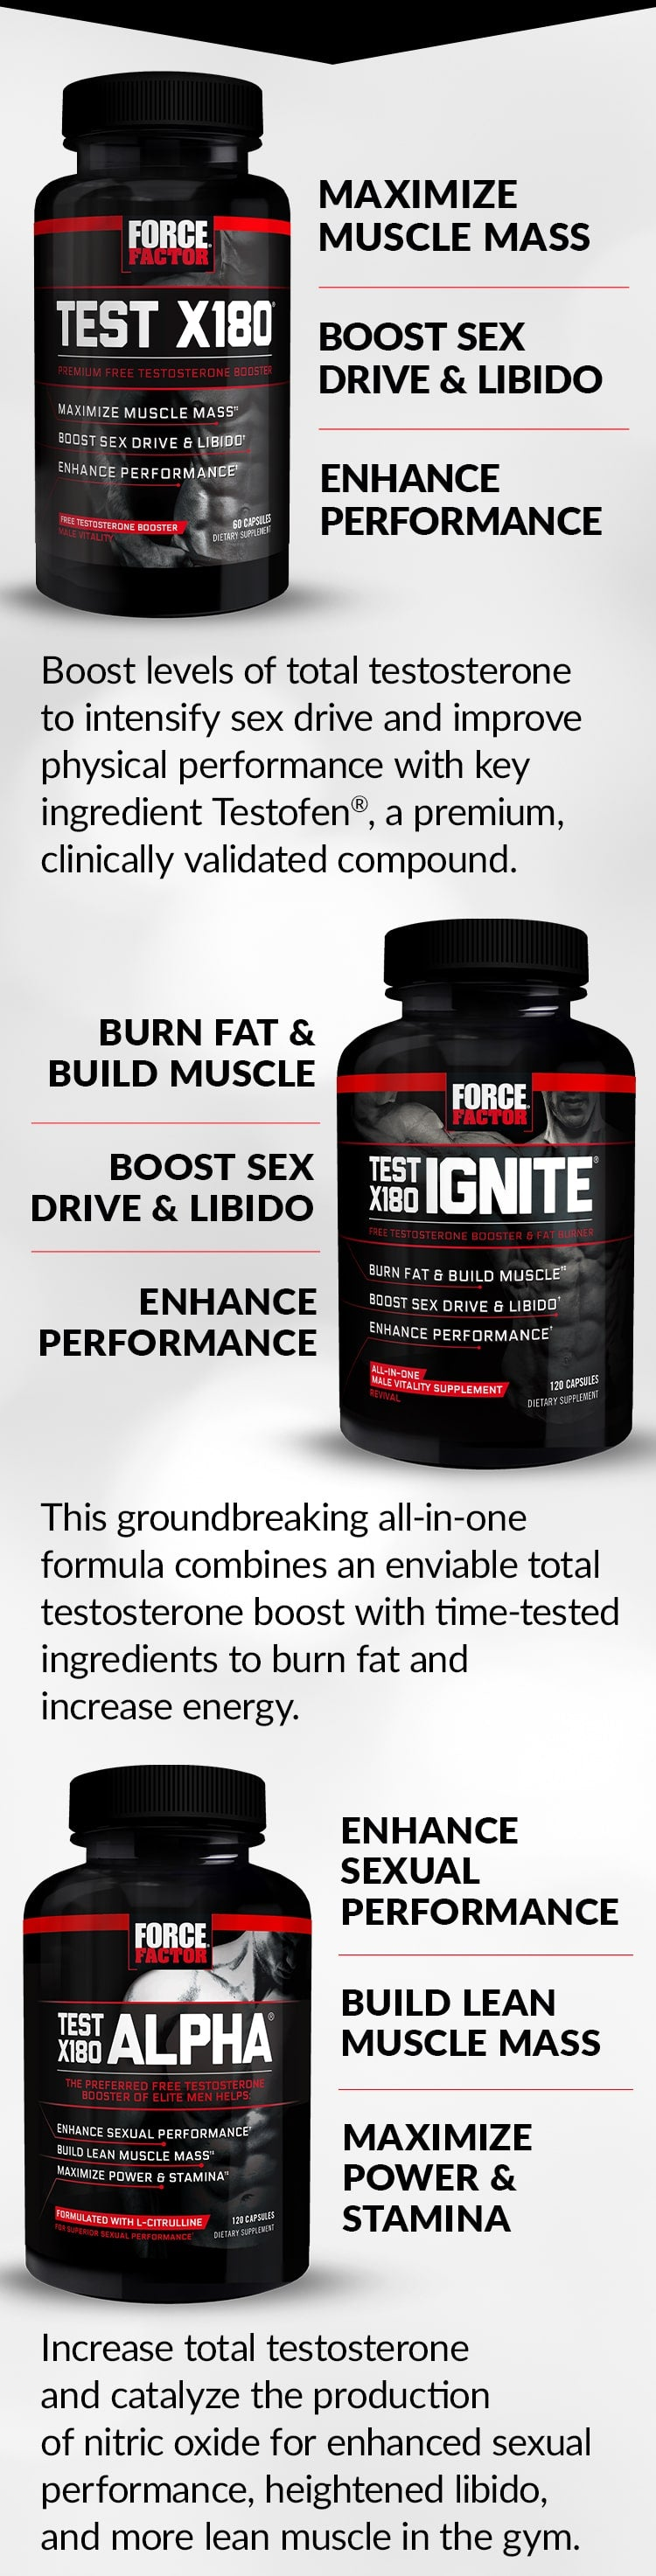 Test X180® - Maximize Muscle Mass, Boost Sex Drive & Libido, Enhance Performance. Boost levels of total testosterone to intensify sex drive and improve physical performance with key ingredient Testofen®, a premium, clinically supported compound. Test X180 Ignite® - Burn Fat & Build Muscle, Boost Sex Drive & Libido, Enhance Performance. This groundbreaking all-in-one formula combines an enviable total testosterone boost with time-tested ingredients to burn fat and increase energy. Test X180 Alpha® -Enhance Sexual Performance, Build Lean Muscle Mass, Maximize Power & Stamina. Increase total testosterone and catalyze the production of nitric oxide for enhanced sexual performance, heightened libido, and more lean muscle in the gym.